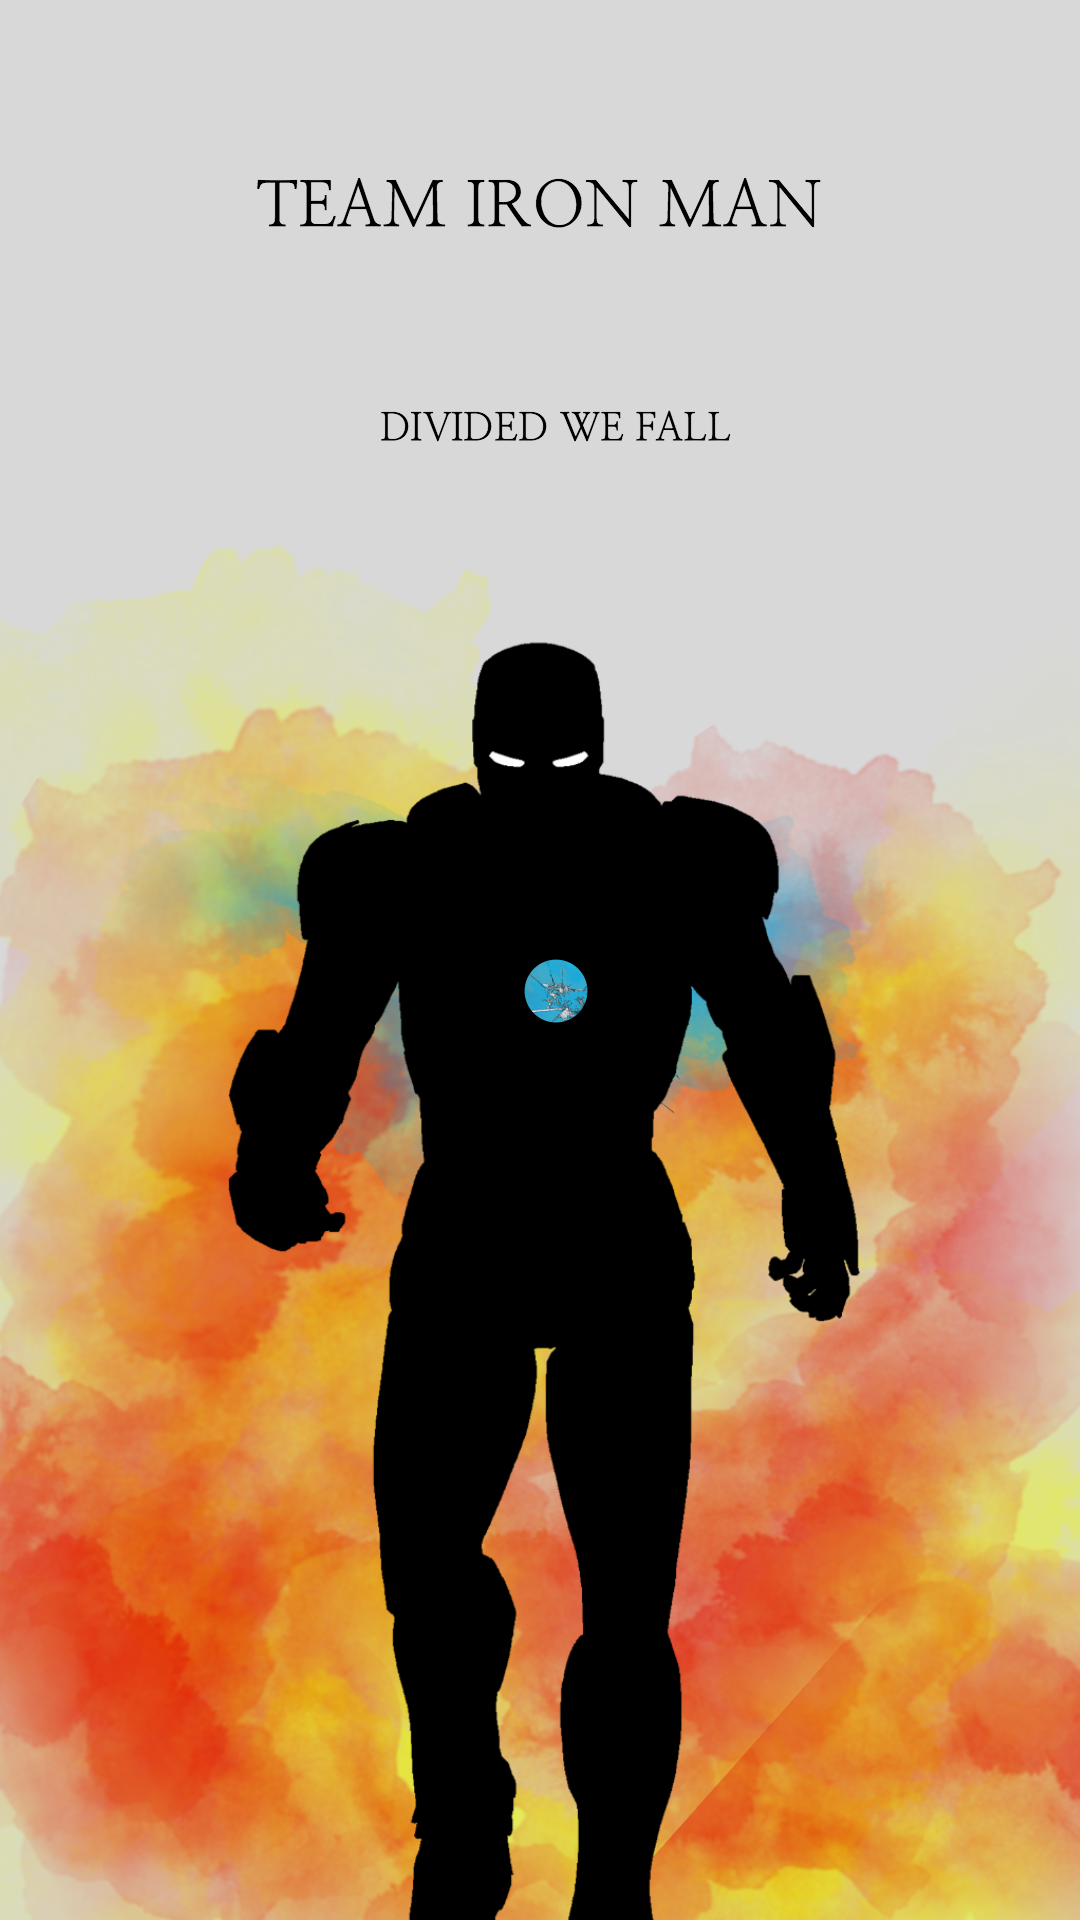 Iron man iphone wallpaper tumblr - Sputnik Iphone Wallpapers Team Iron Man Free For Use As